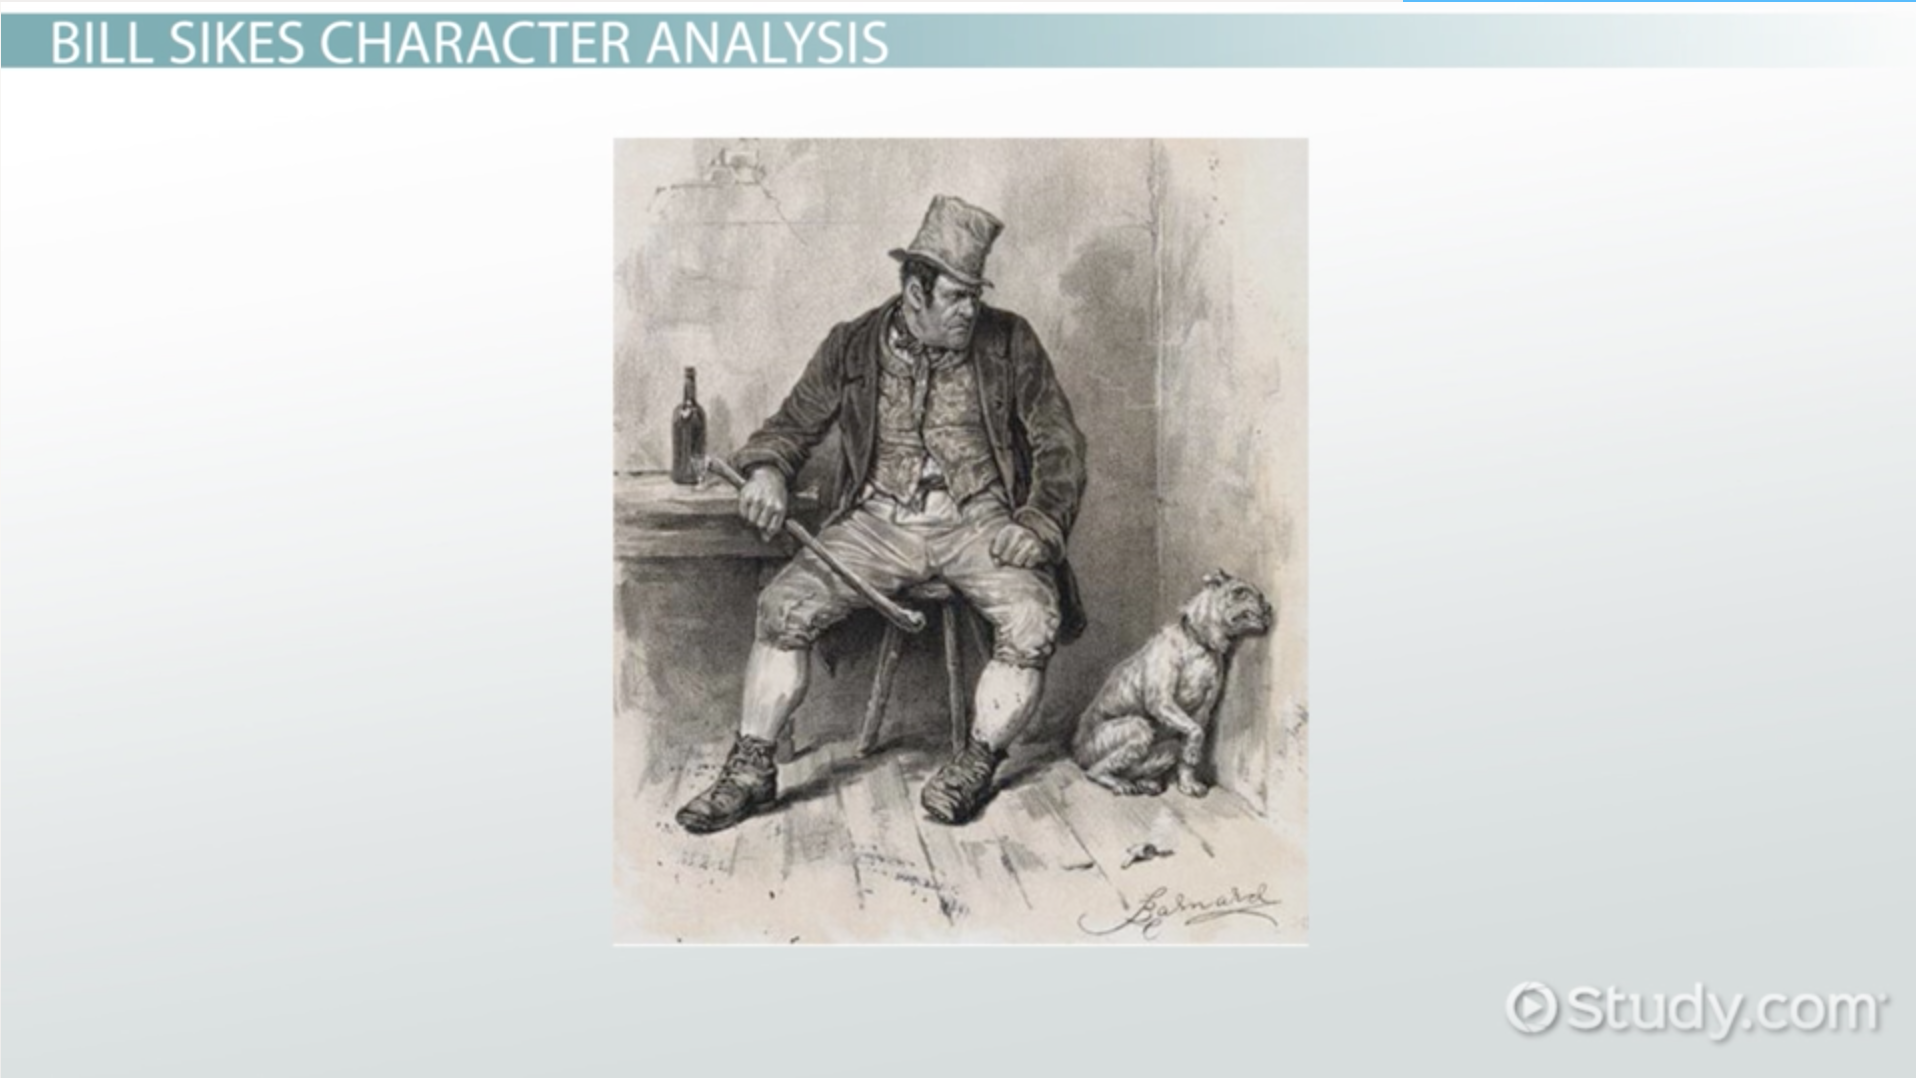 miss havisham in great expectations description character bill sikes from oliver twist character analysis overview